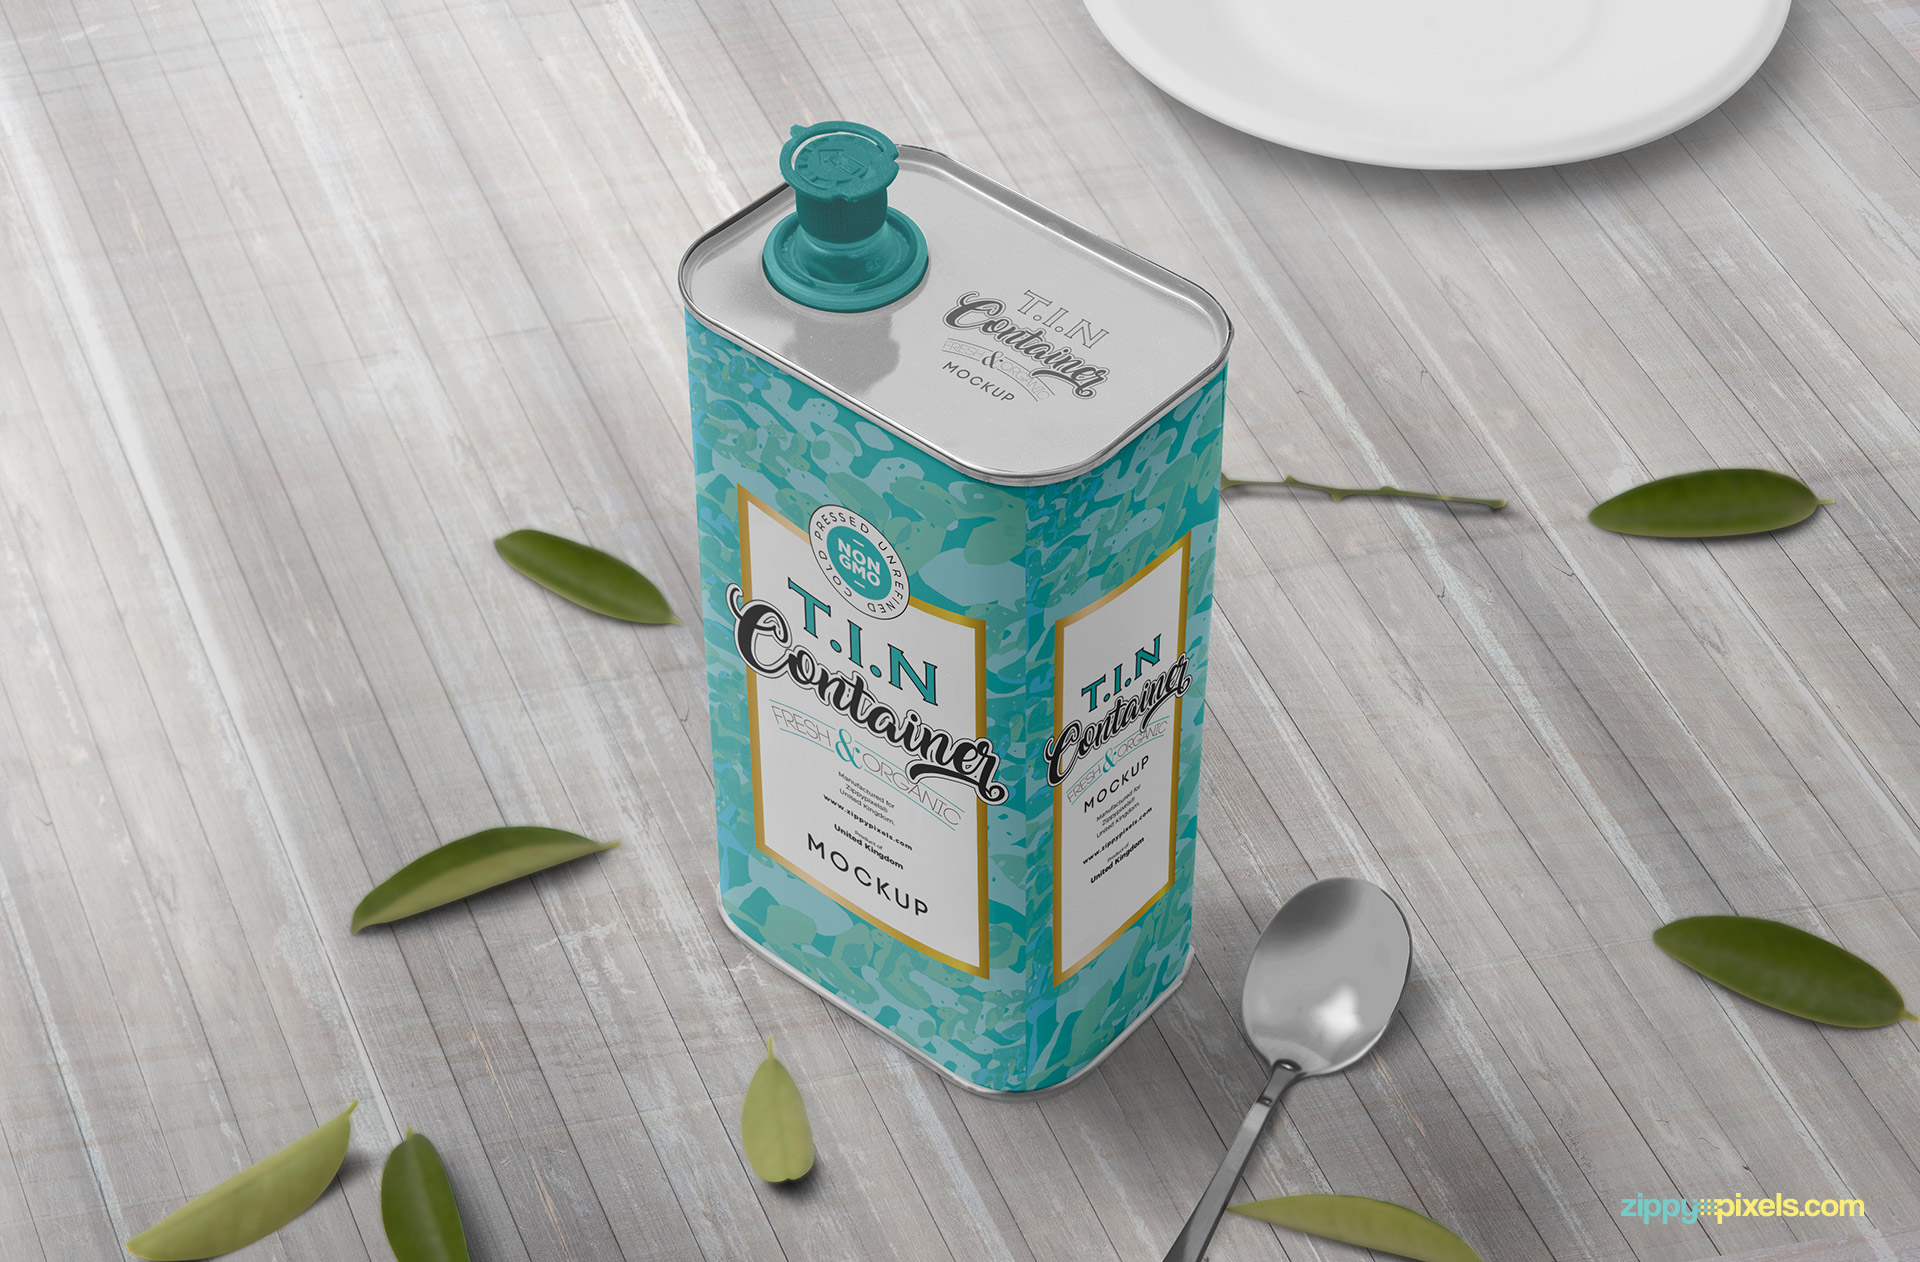 Tin container mockup with wooden background.